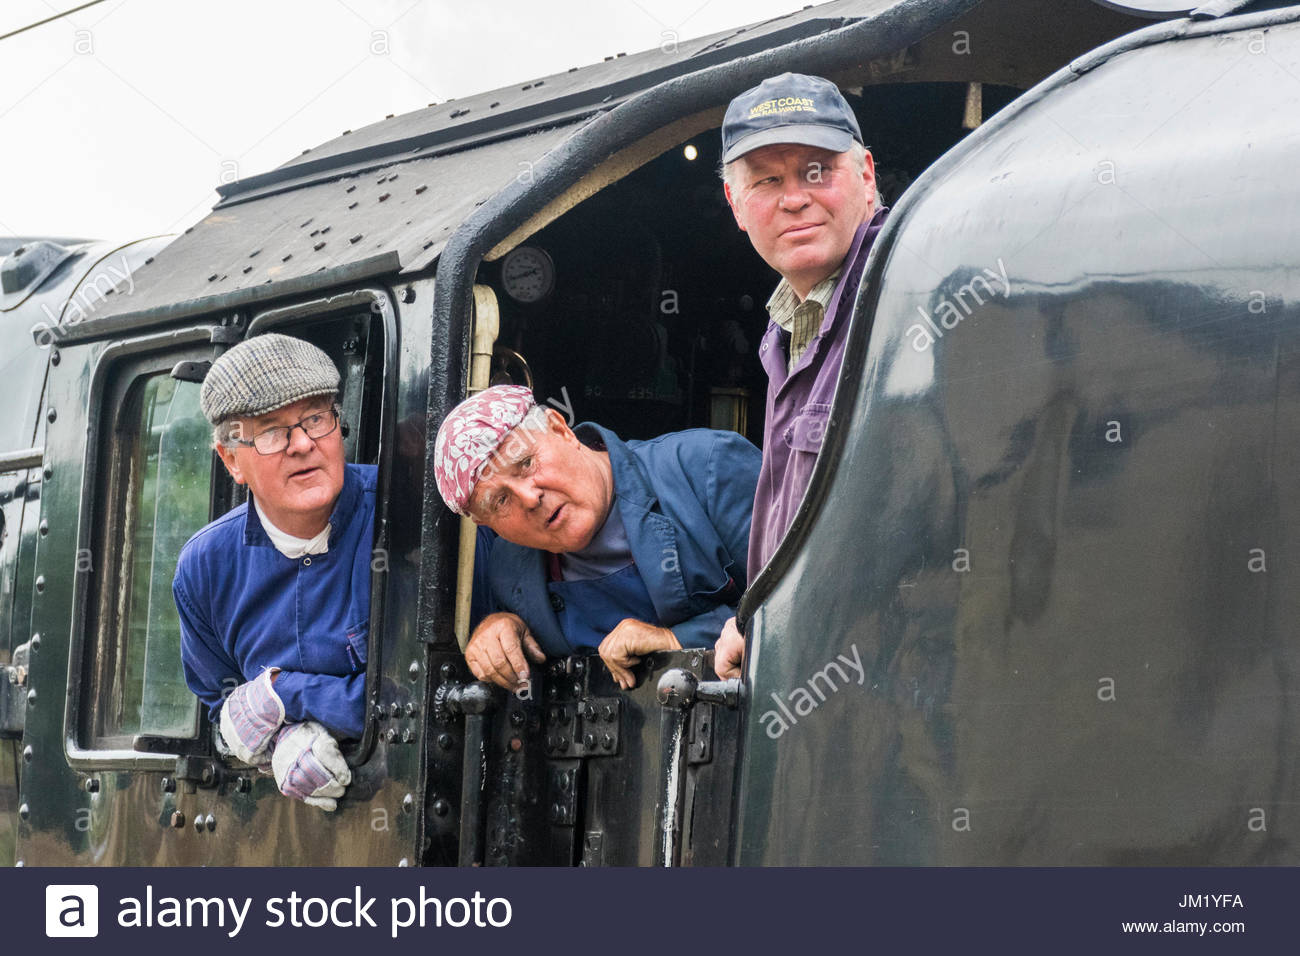 Lancaster Railway Station, UK, 25 July 2017, The Fellsman steam railway tour stops at Lancaster Castle Railway Station to pick up passengers for the steam tour. The crew on the engine footplate wait for the signal from the guard that the train is ready to depart - Stock Image